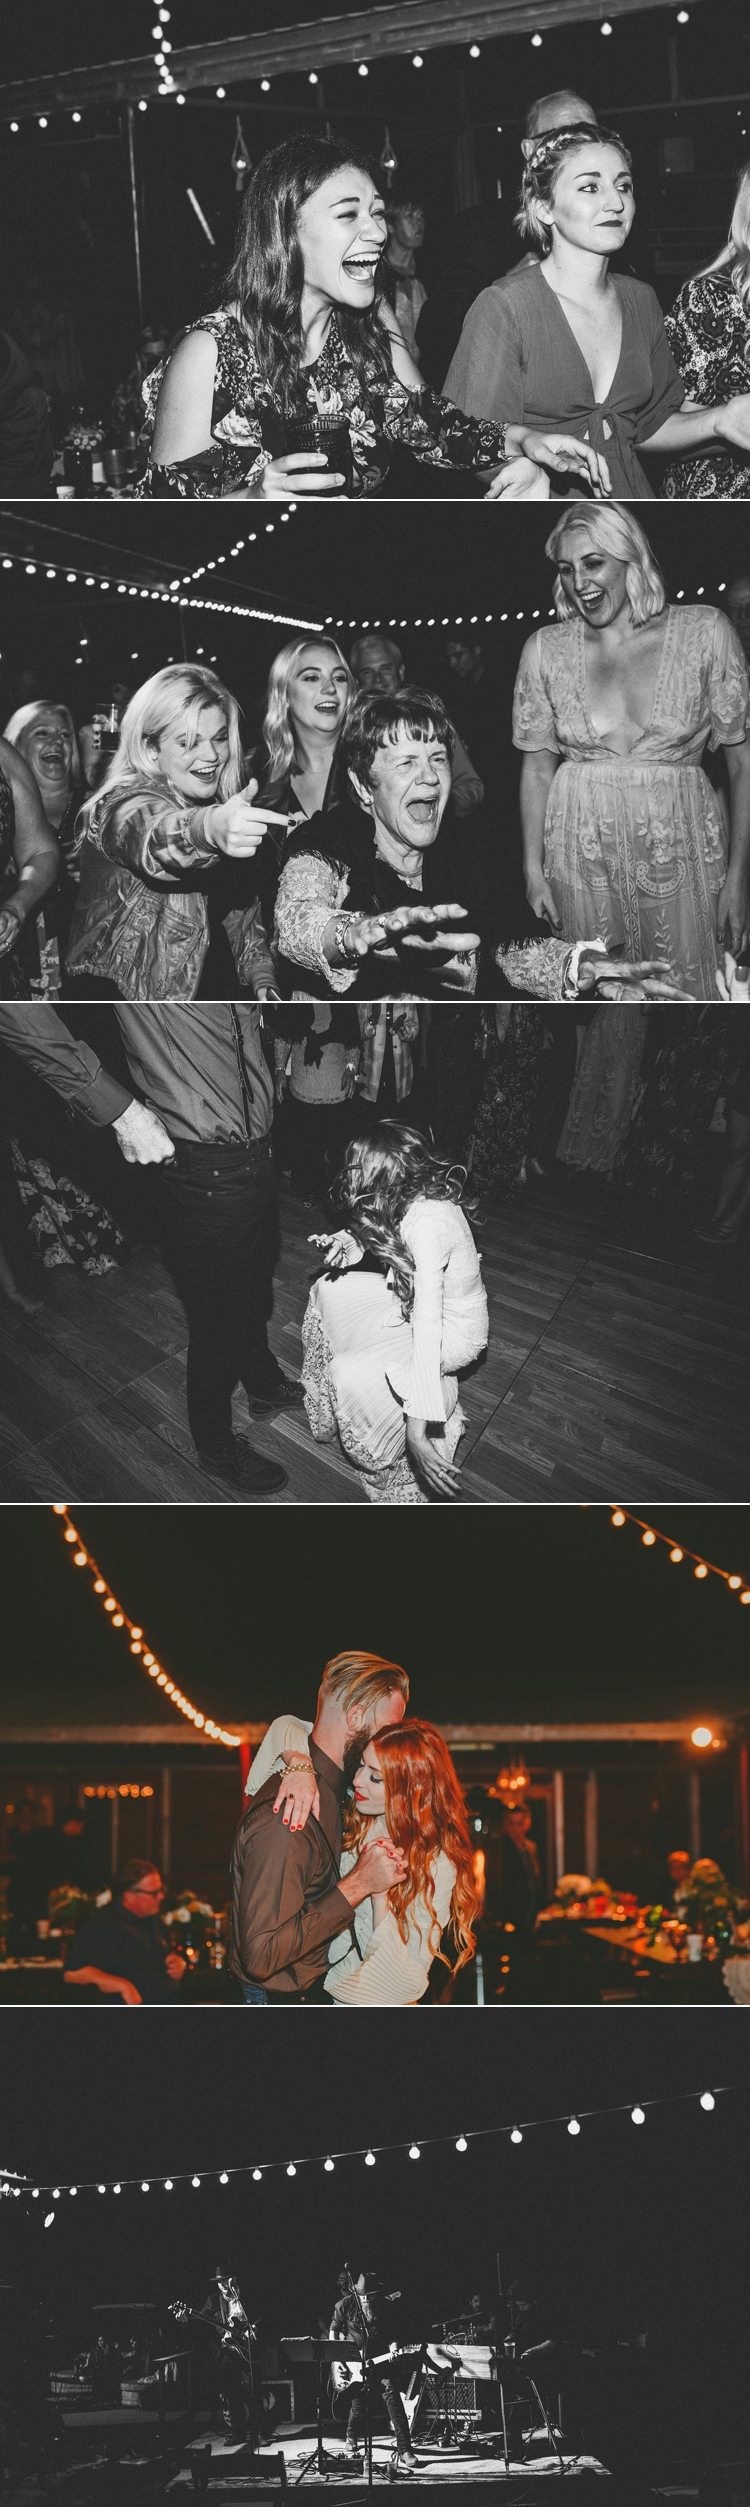 woodstock-inspired-wedding-photos-37